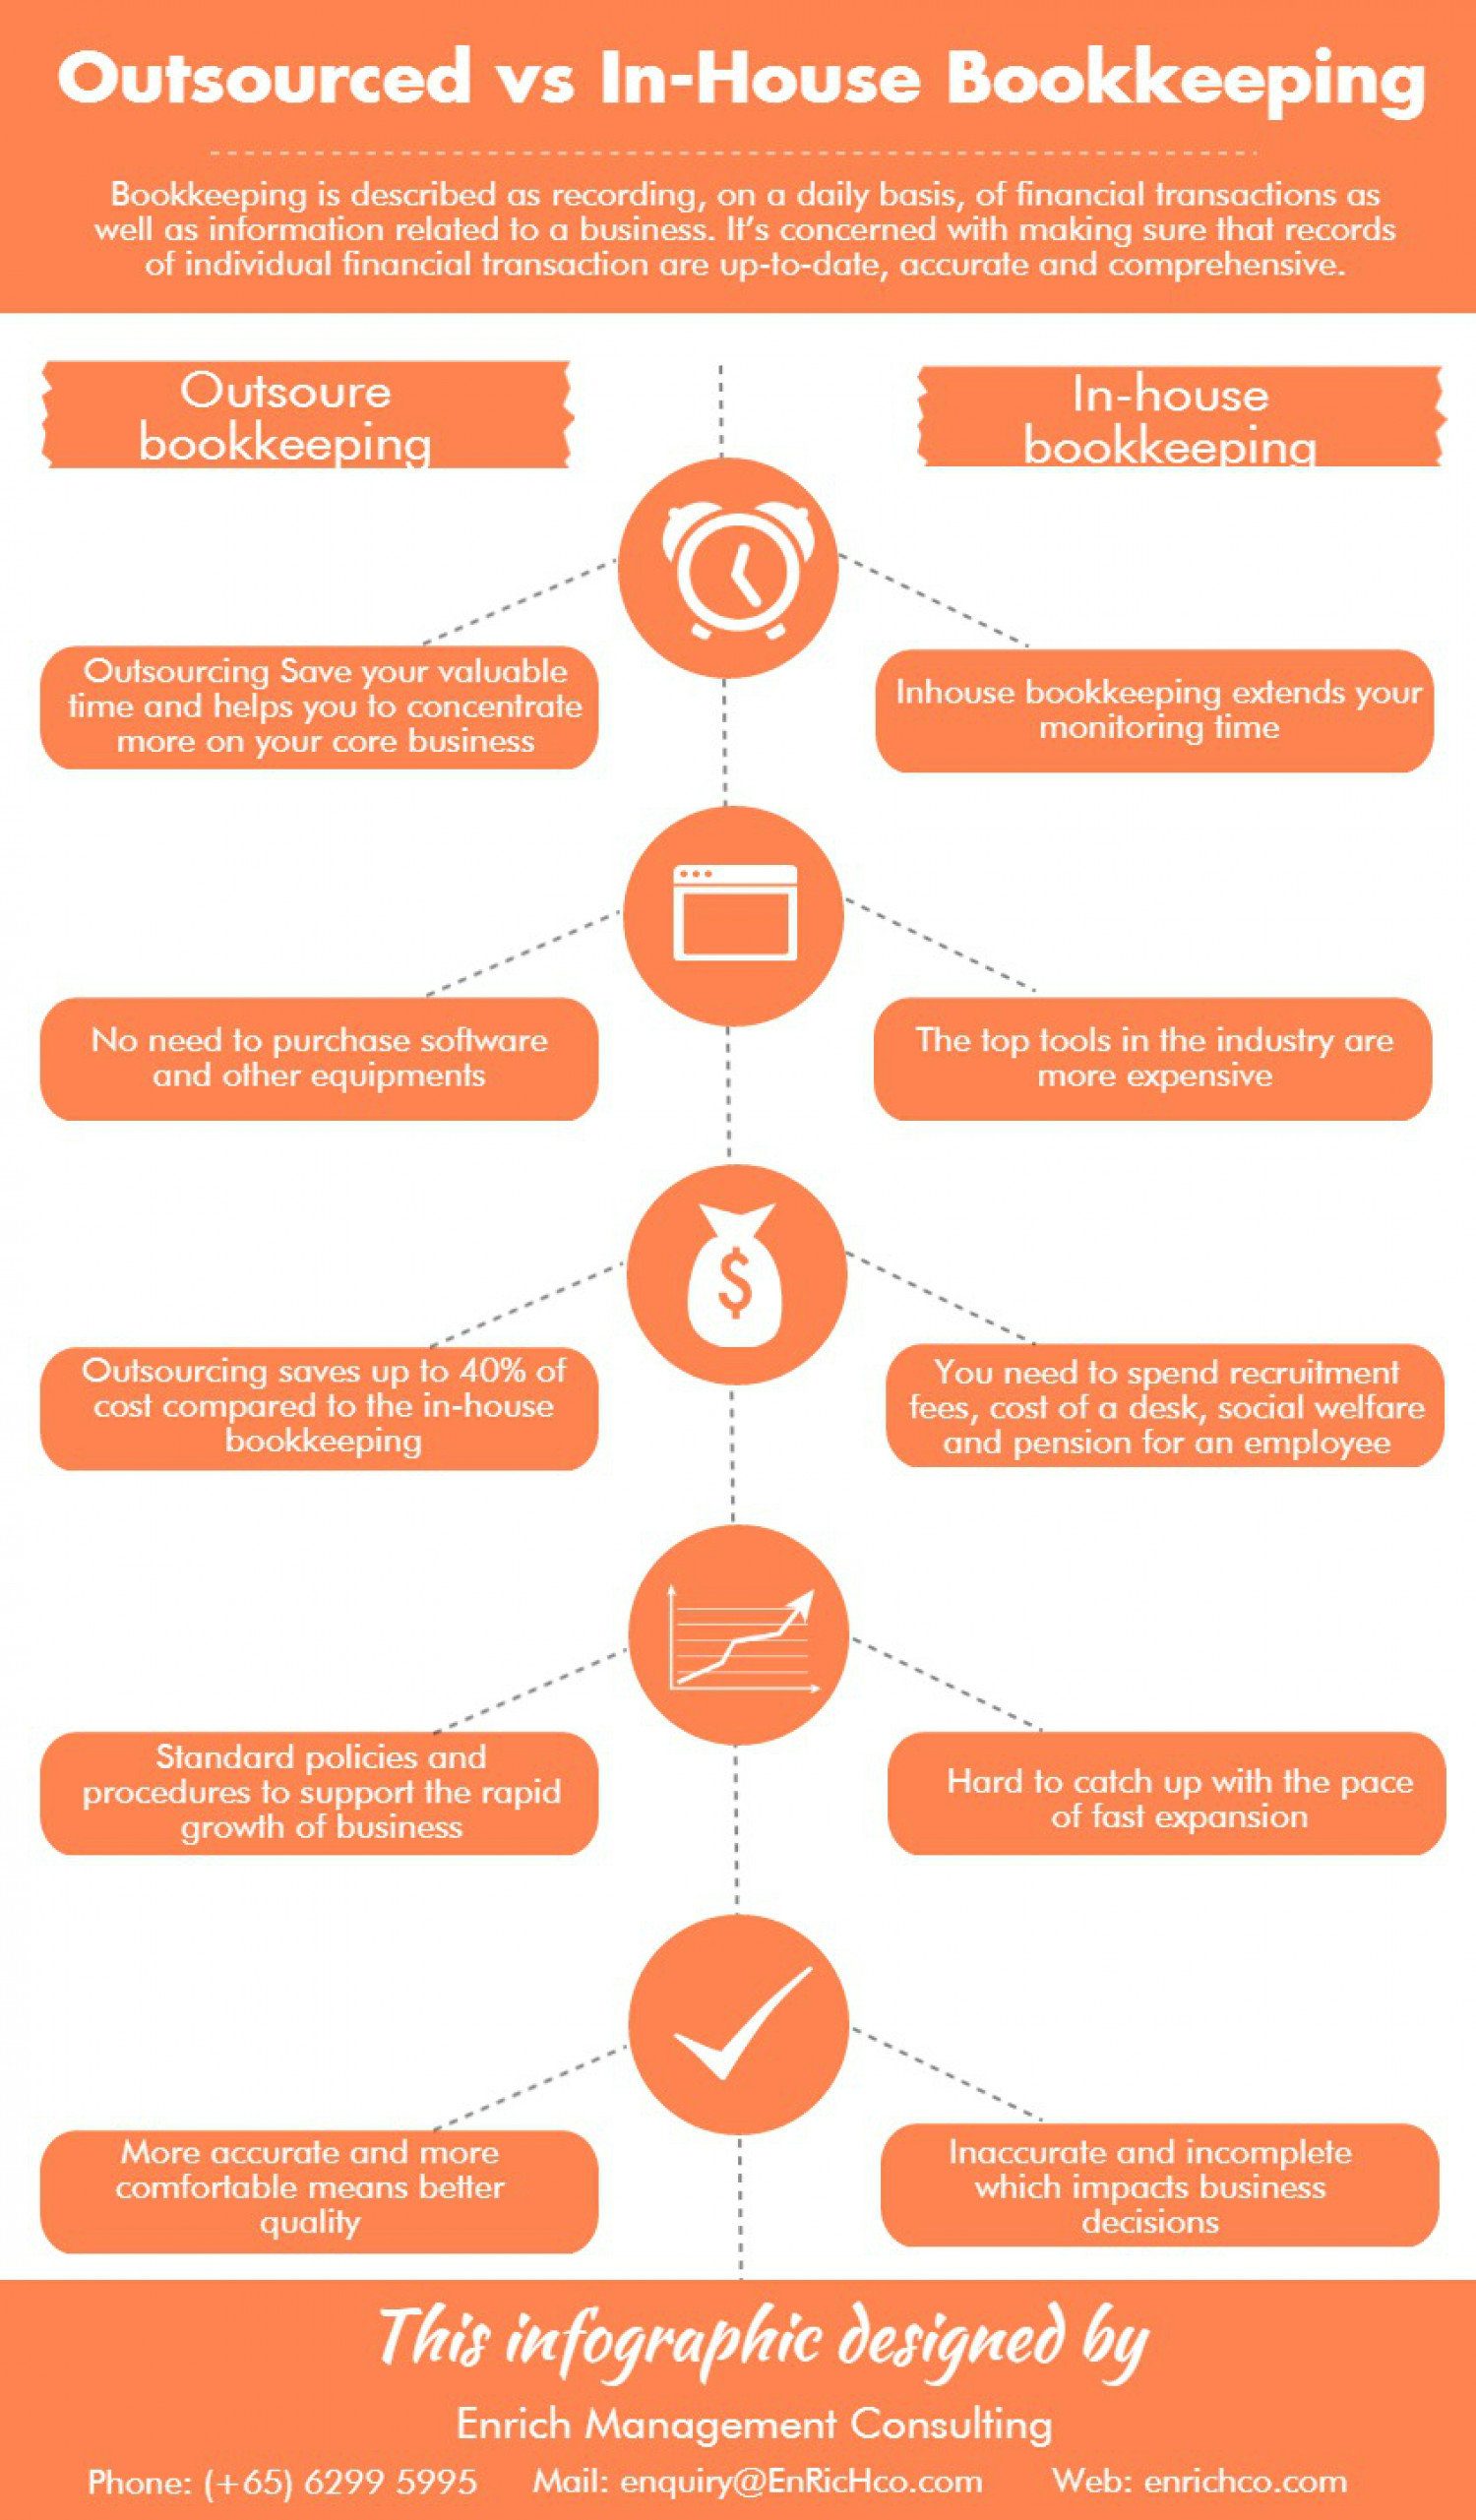 Outsourced bookkeeping vs In-House Bookkeeping Infographic